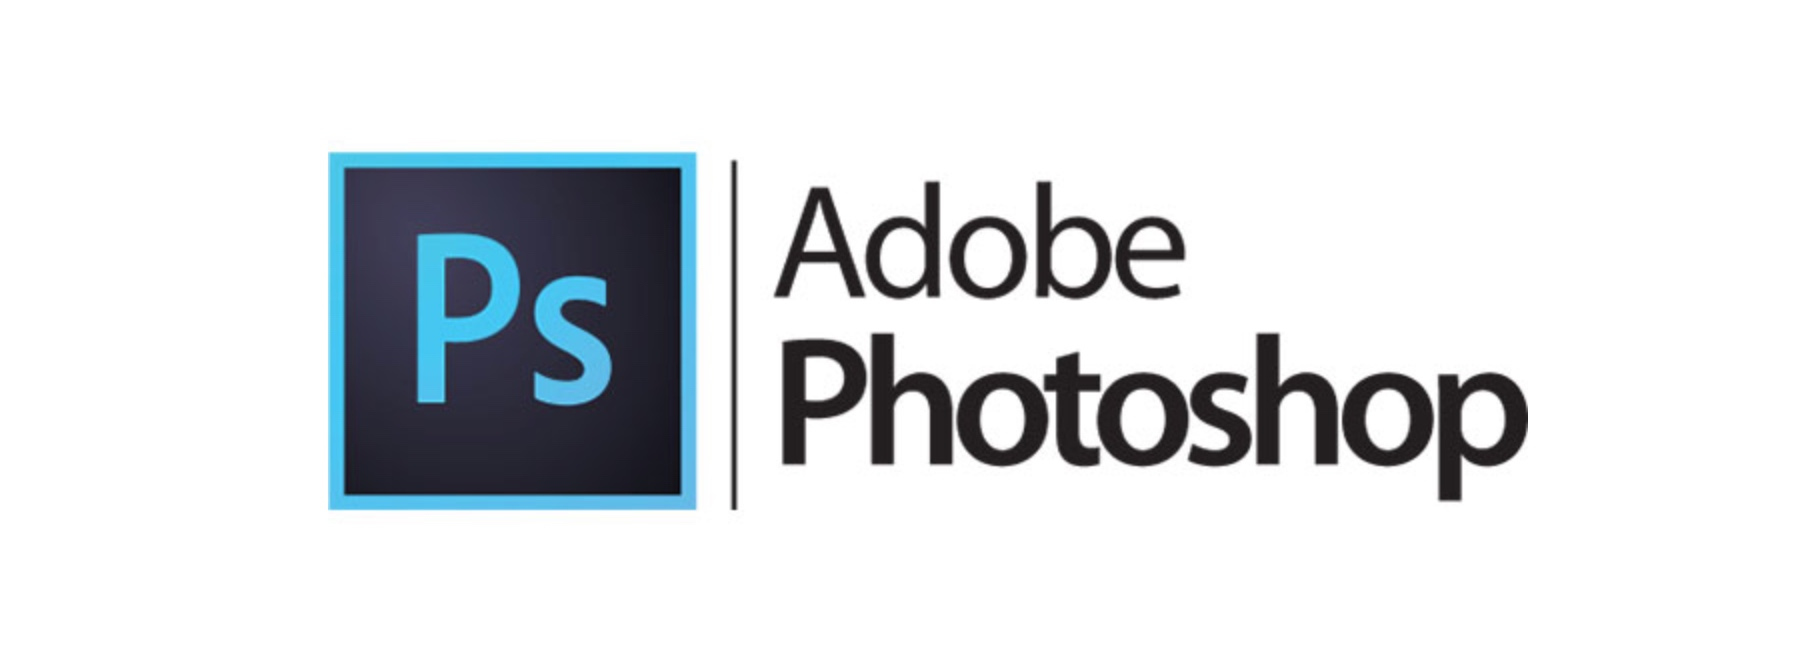 adobe-photoshop^2019^photoshop-logo